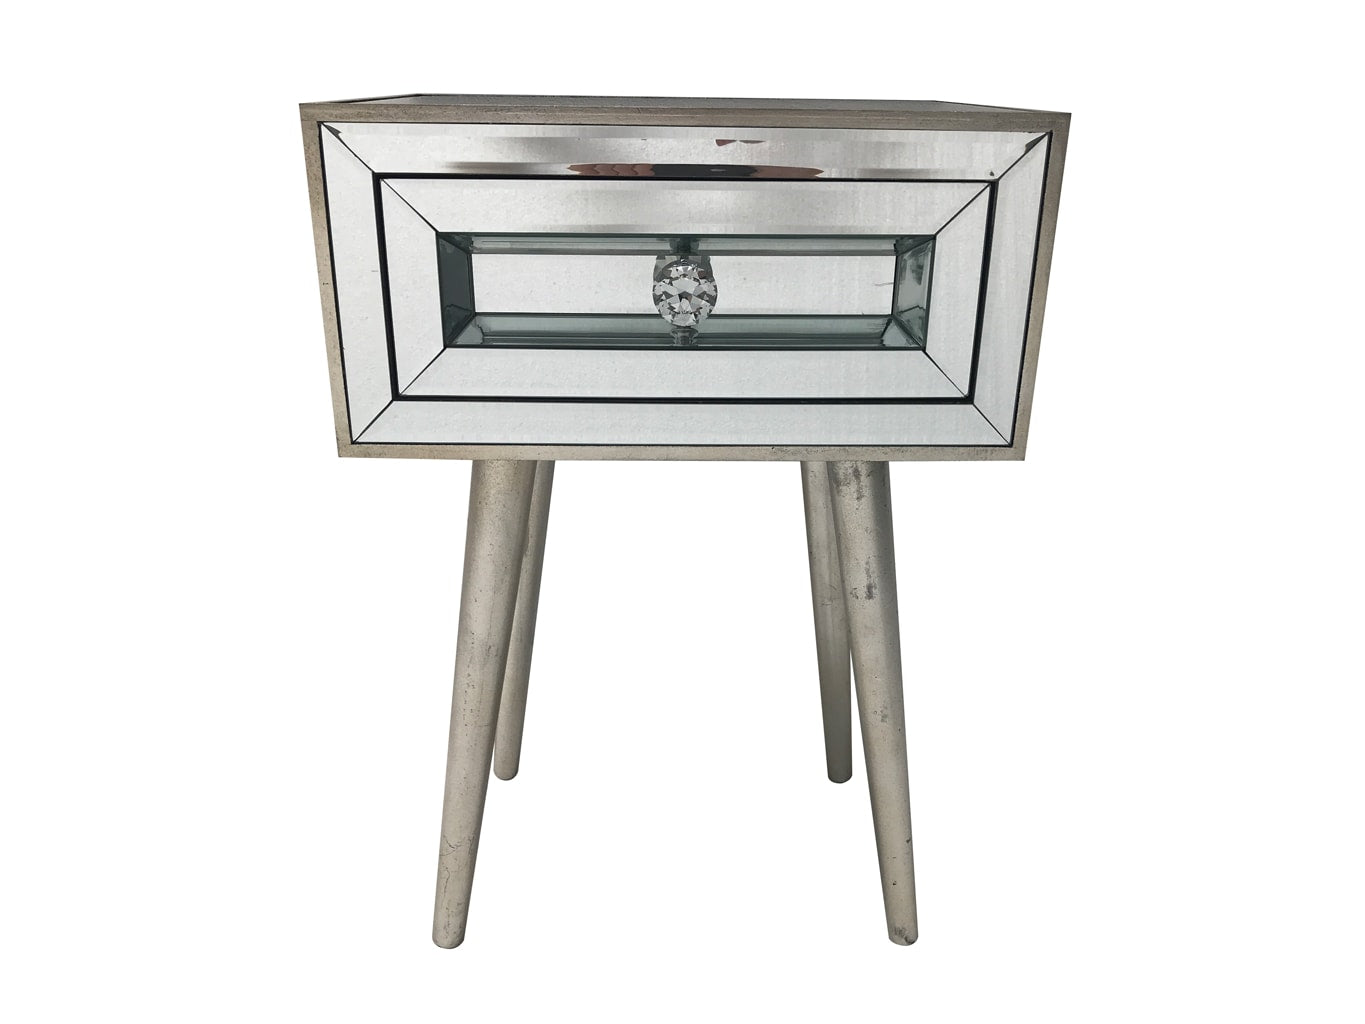 Mirrored Side Table / Bedside, wood and mirror, antique silver finish.